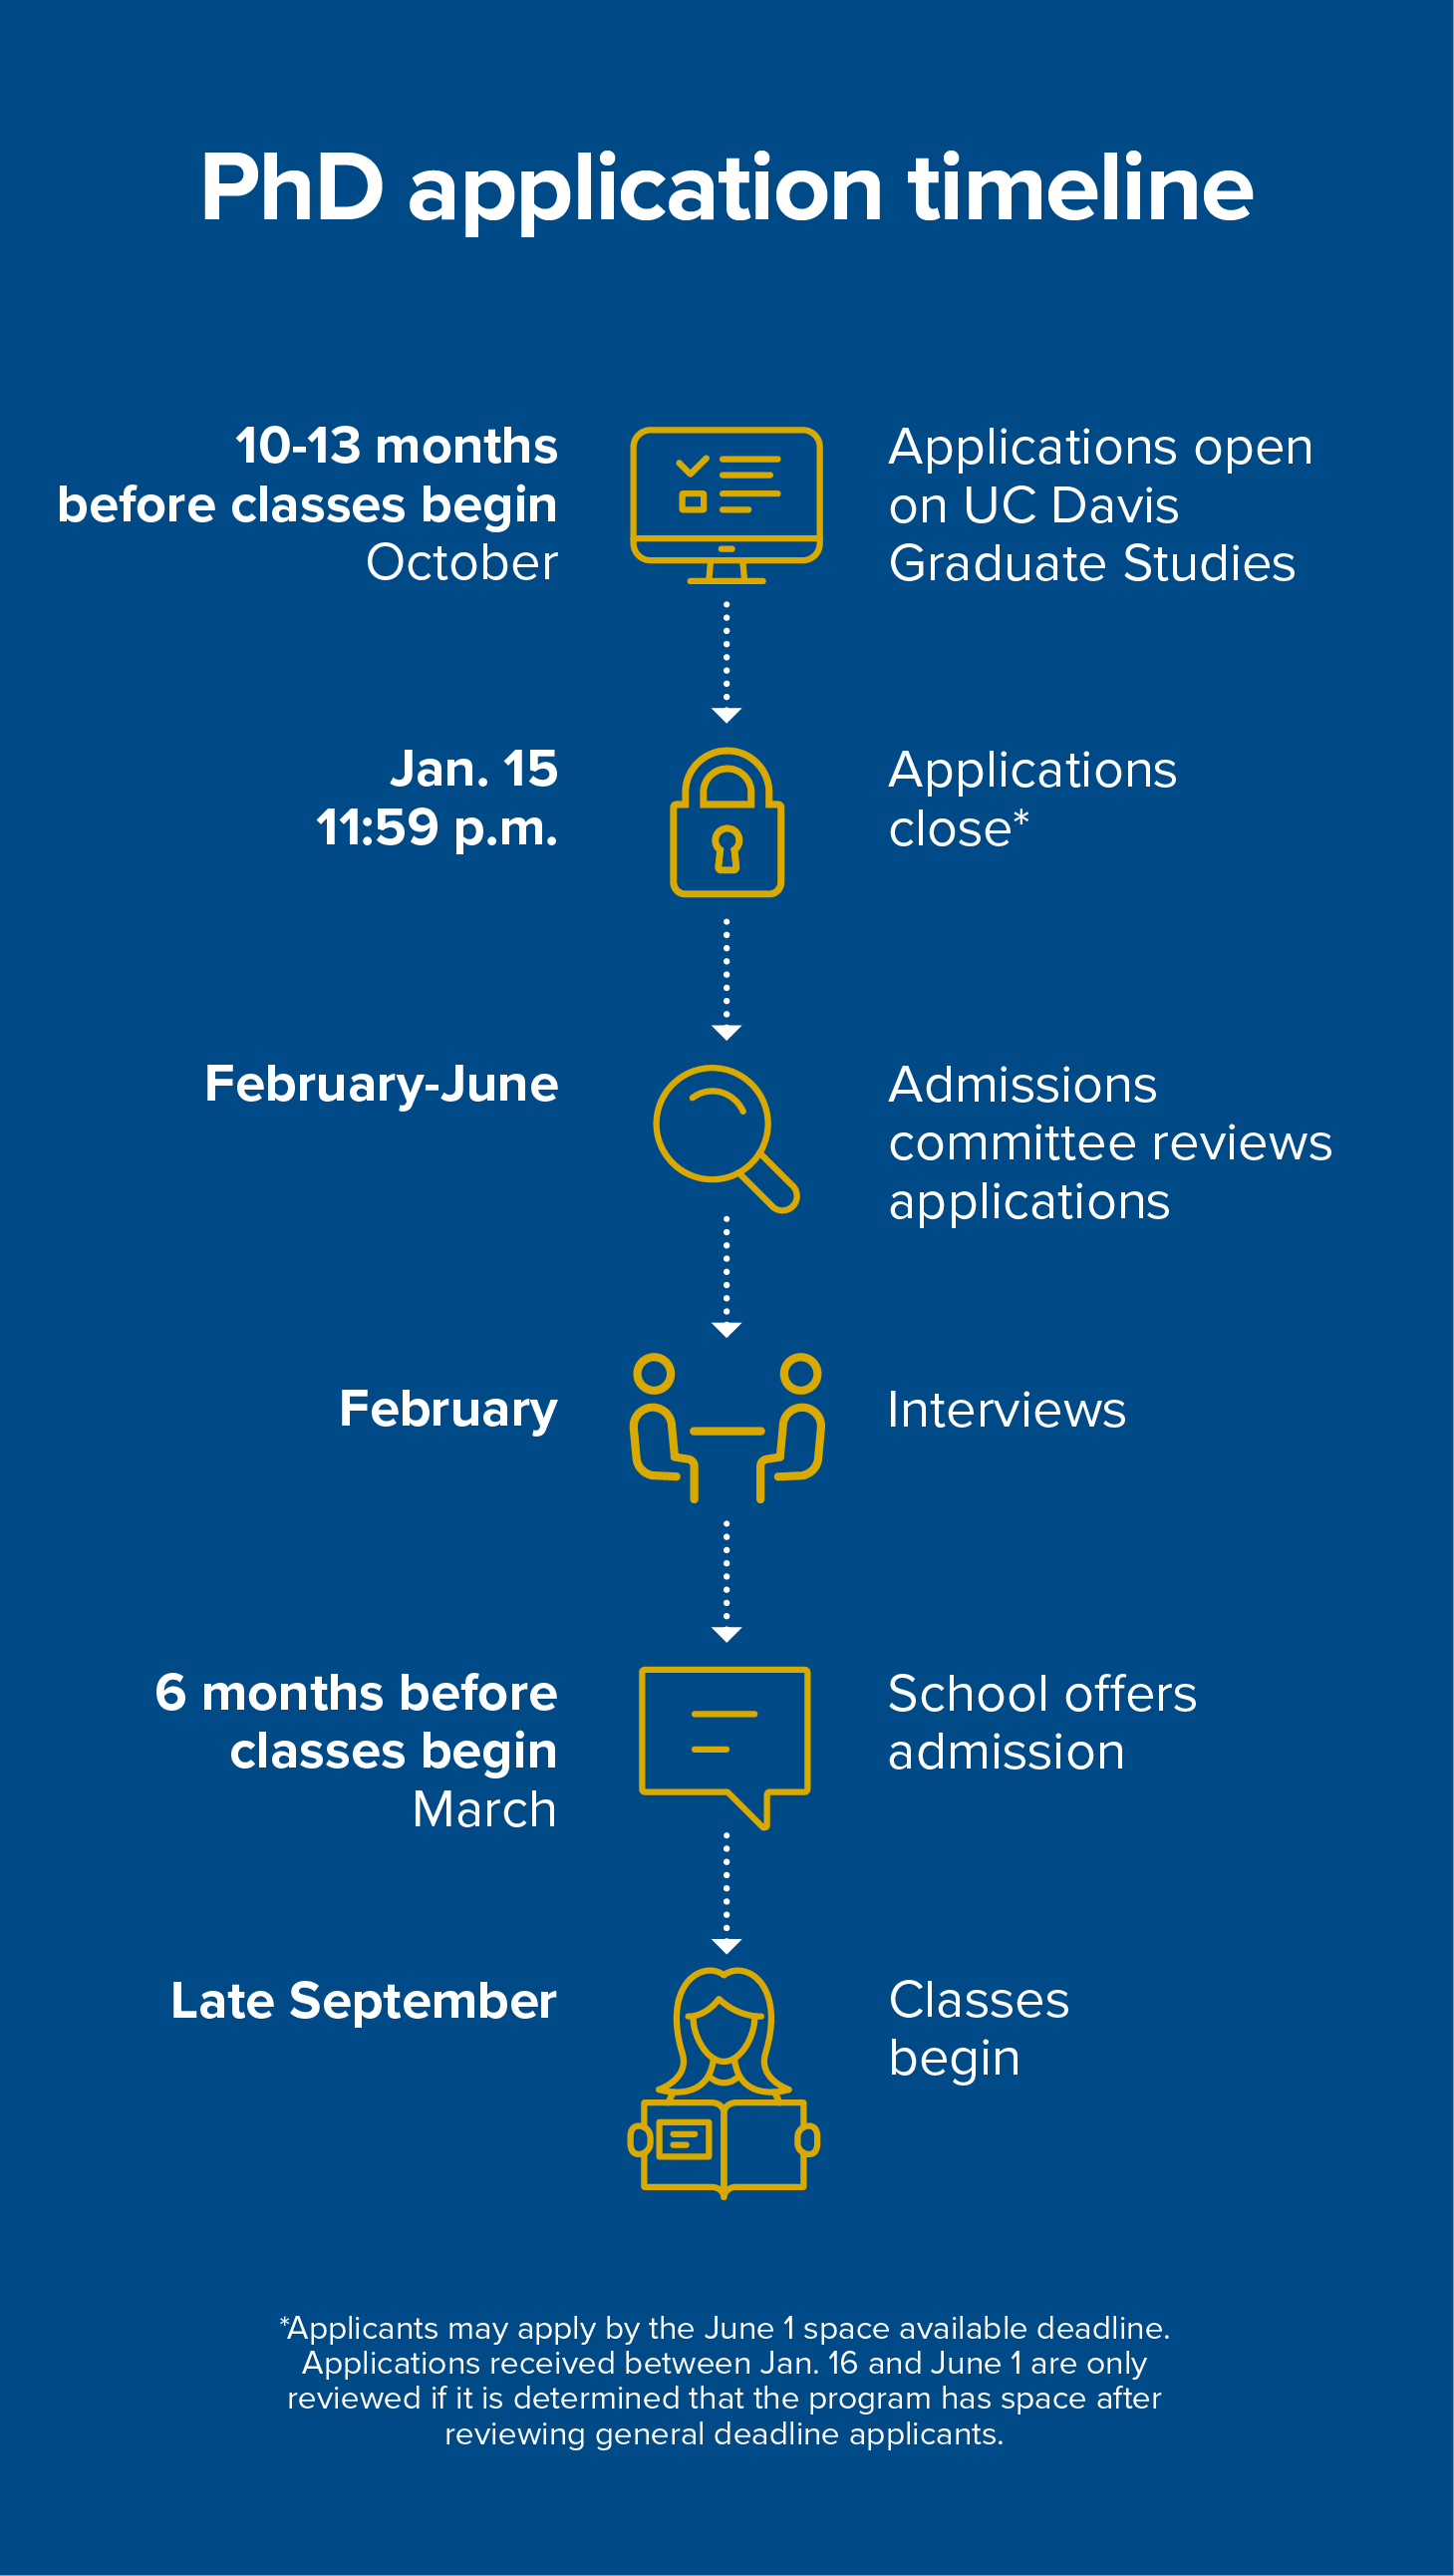 PhD application timeline